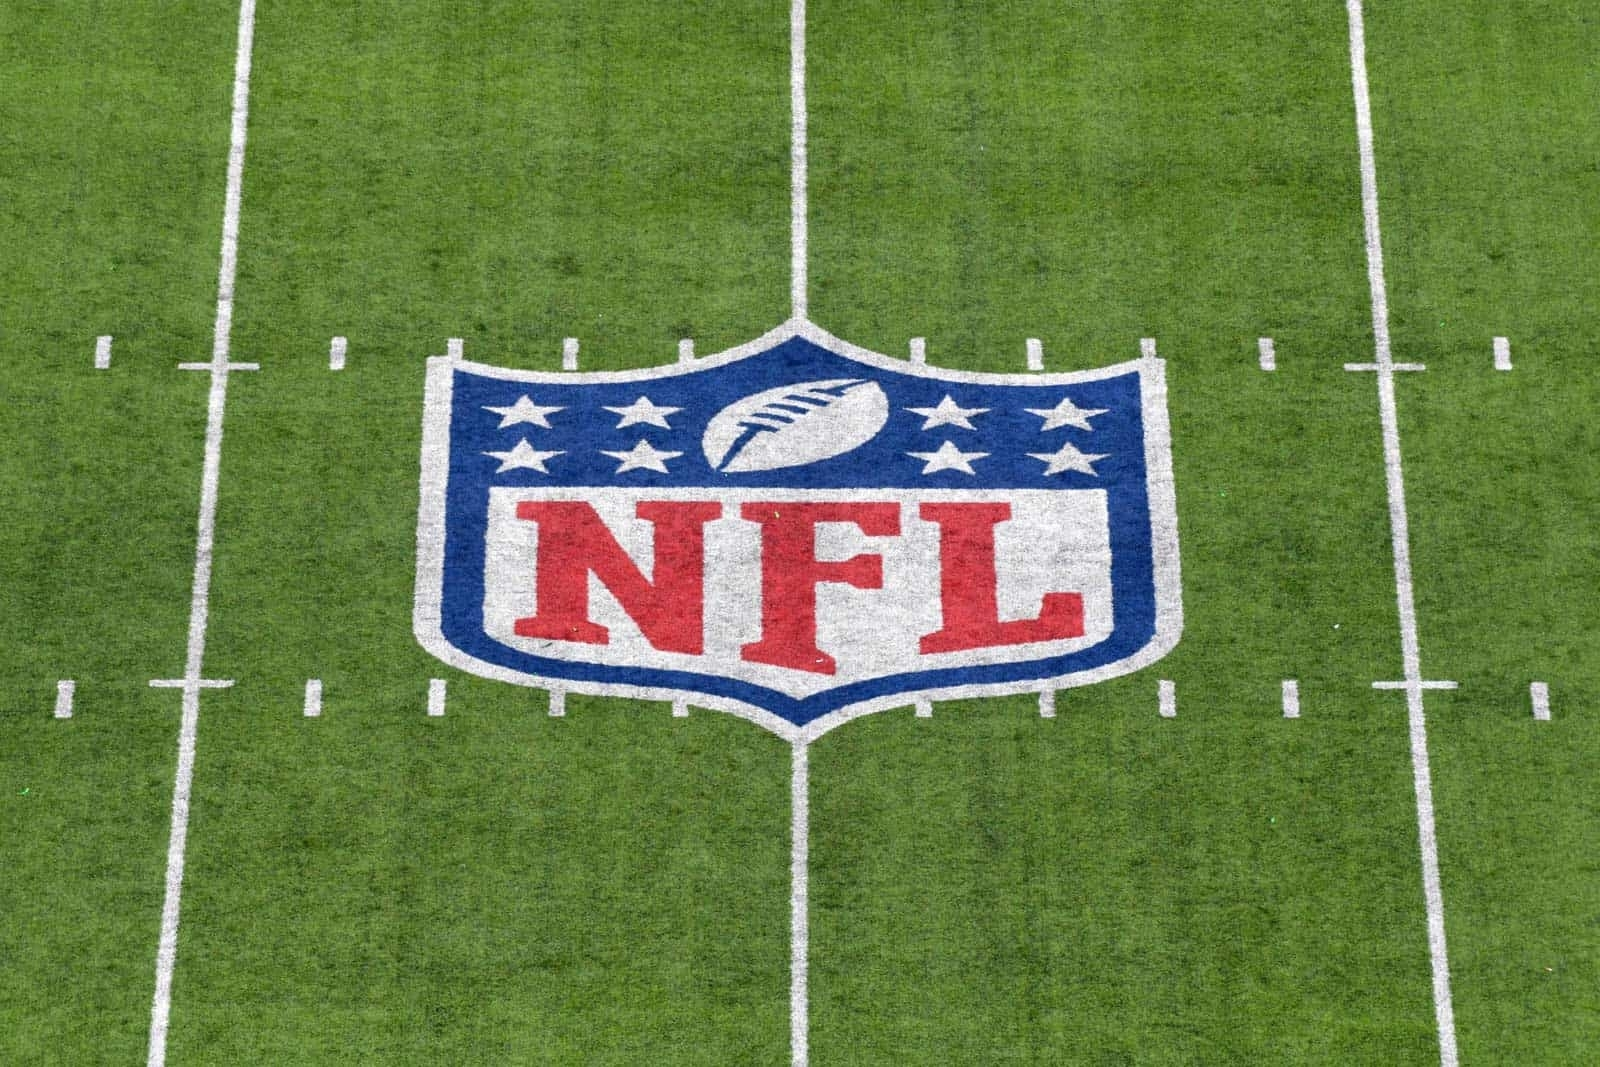 Nfl Playoff Schedule 2018-2019 Announced